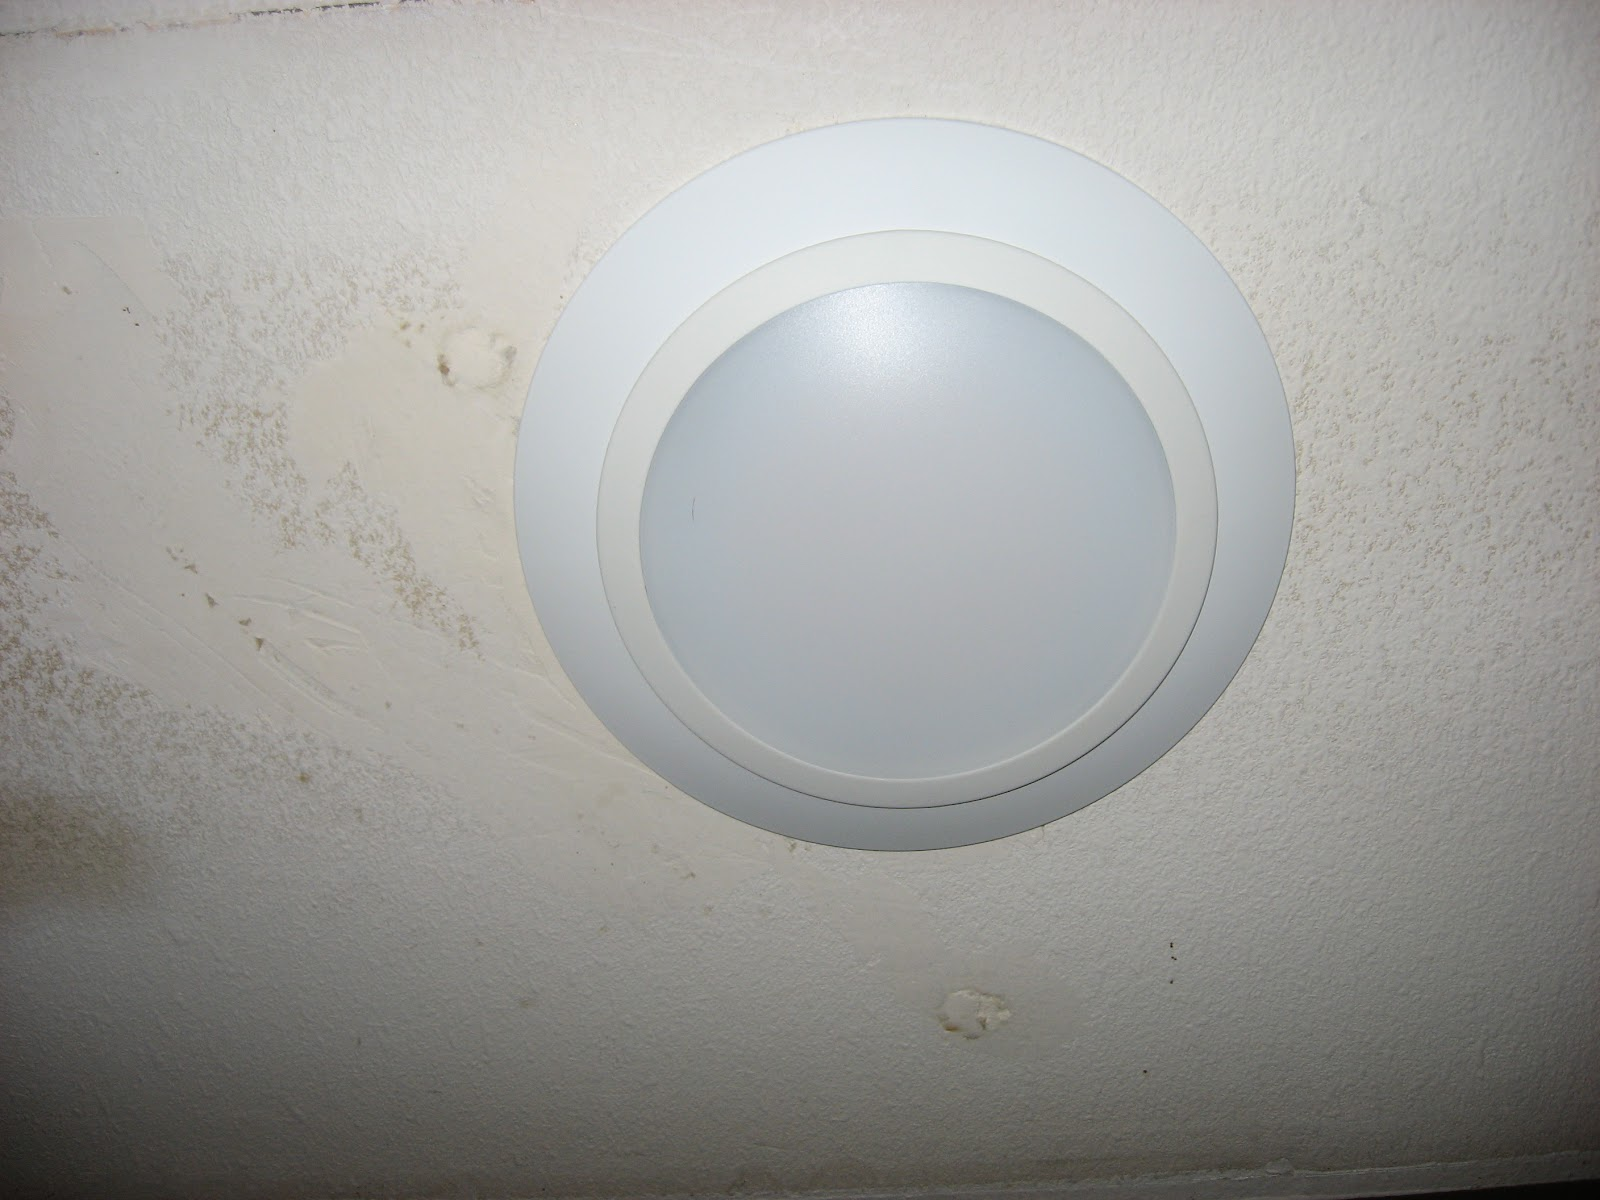 Energy Conservation How To LED Plate Lights Replace Can Lights